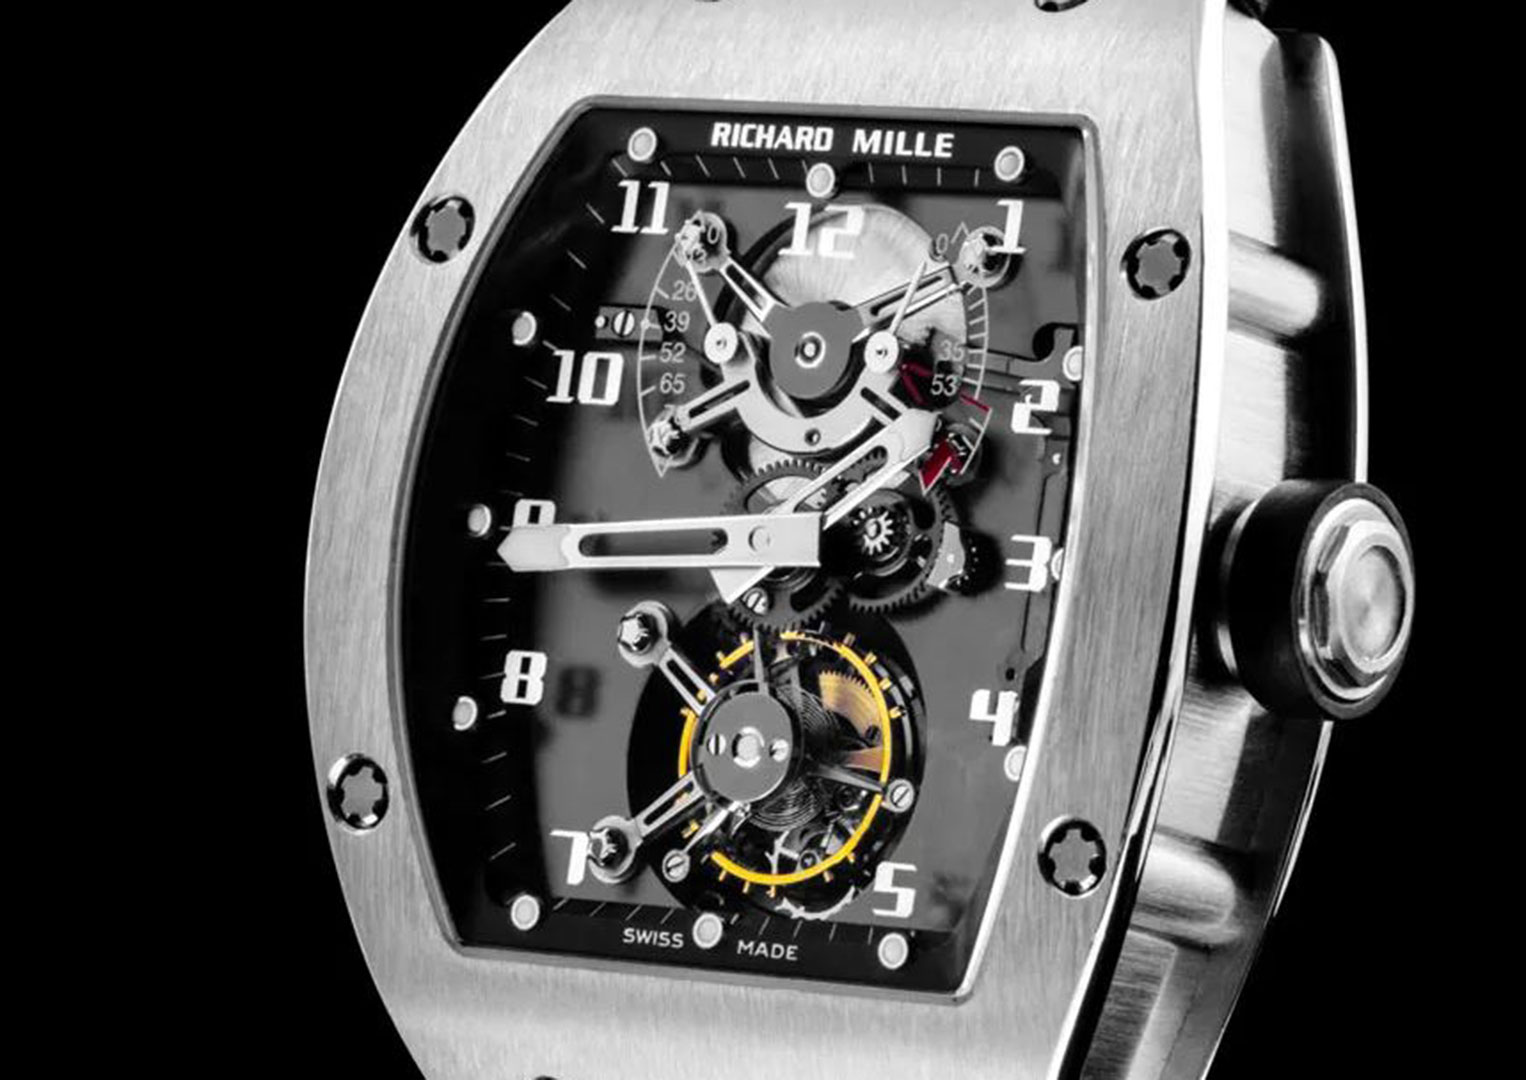 The RM 001 tourbillon was the brand's spectacular first watch